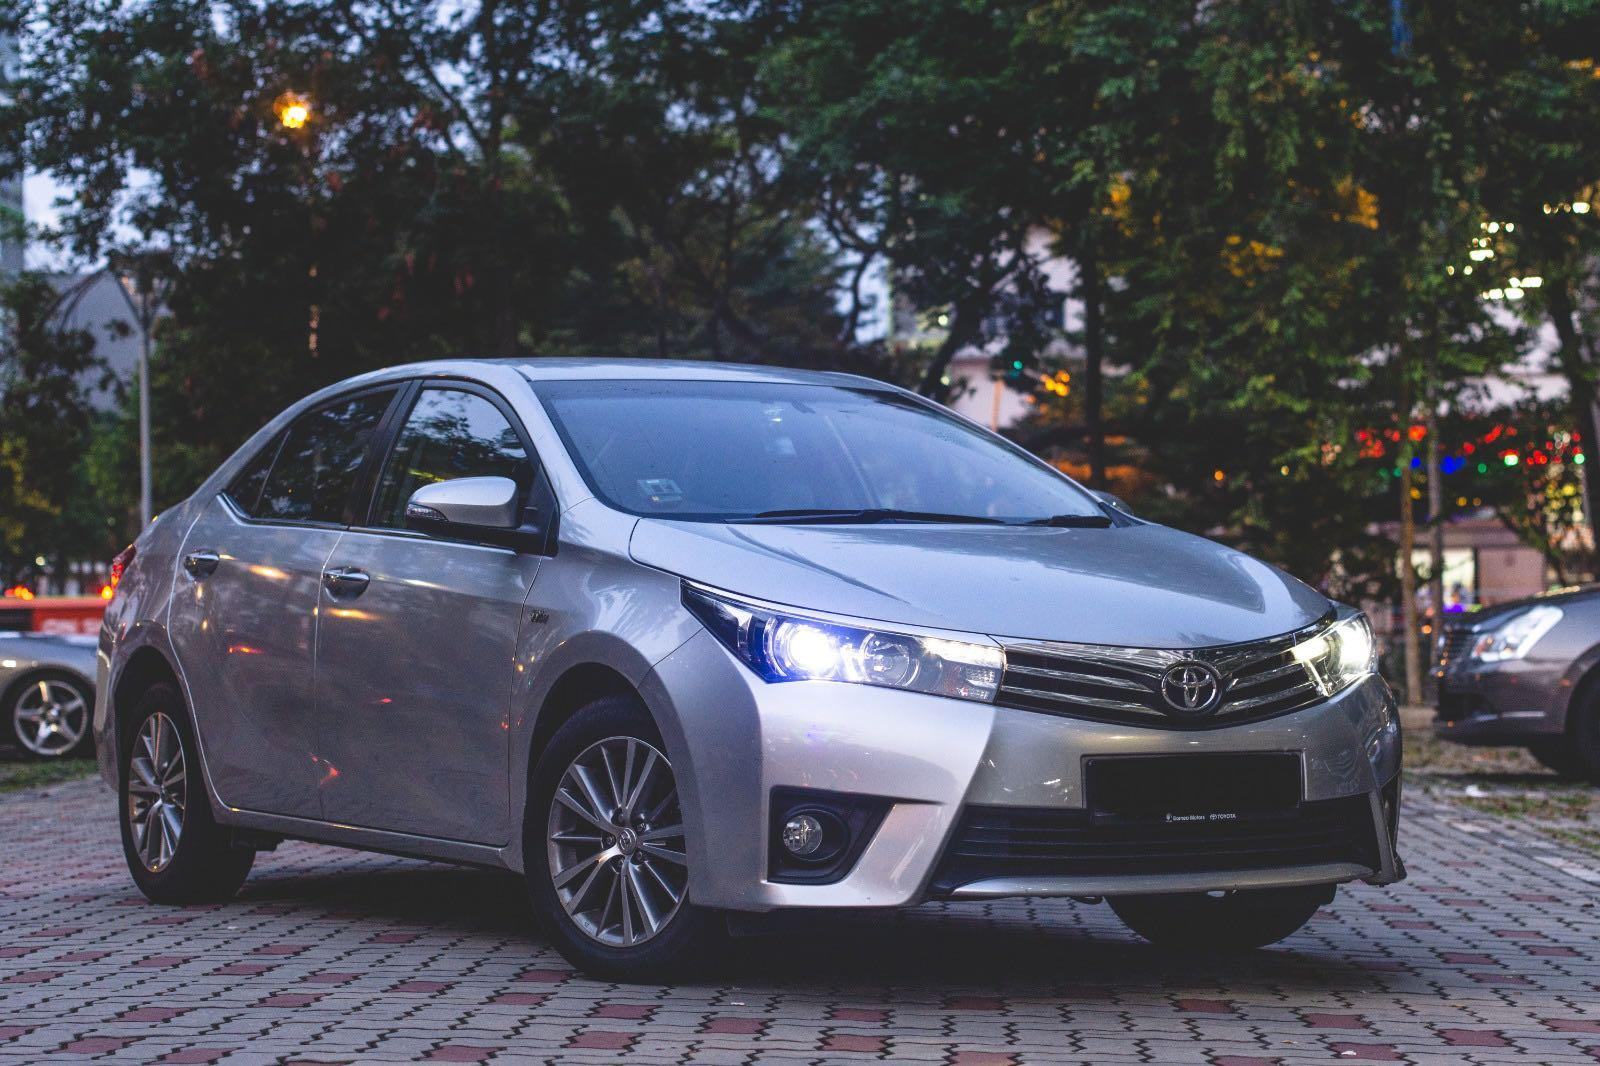 🔥BRAND NEW💪🏽 TOYOTA COROLLA ALTIS 1.6A🔥 BOOK NOW!✅😌